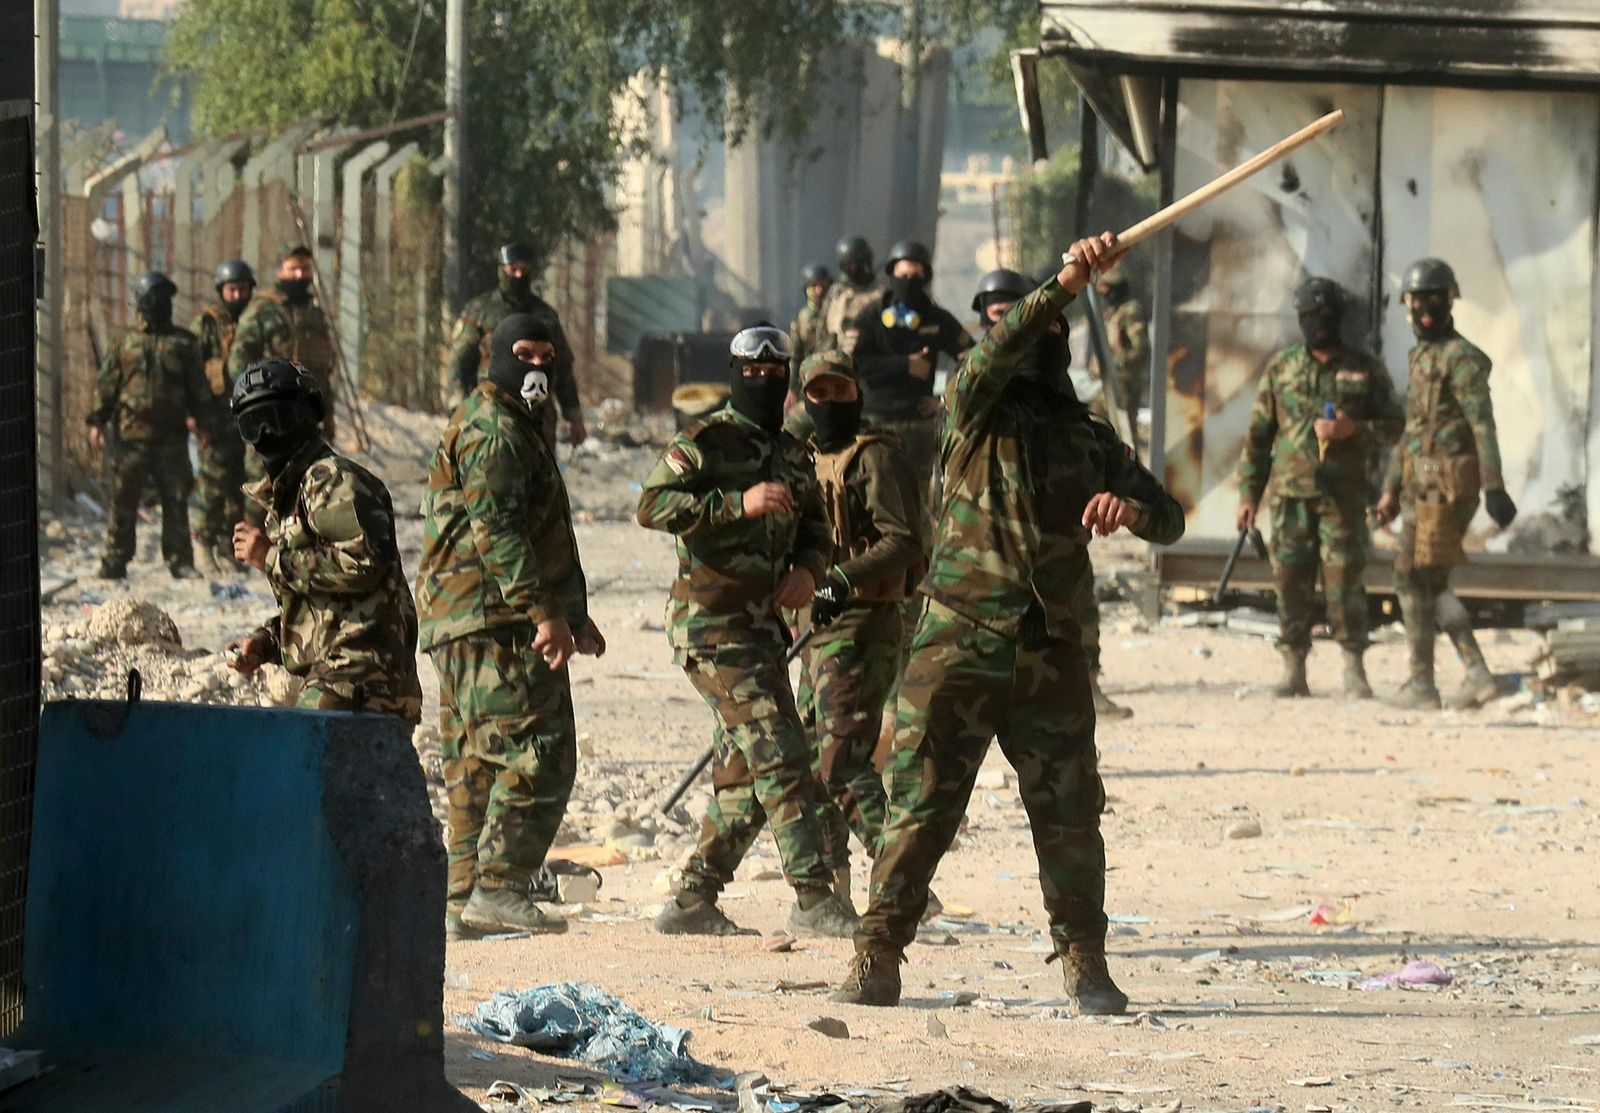 Security forces try to disperse anti-government protesters during clashes in Baghdad, Iraq, Saturday, Nov. 30, 2019. (AP Photo/Hadi Mizban)